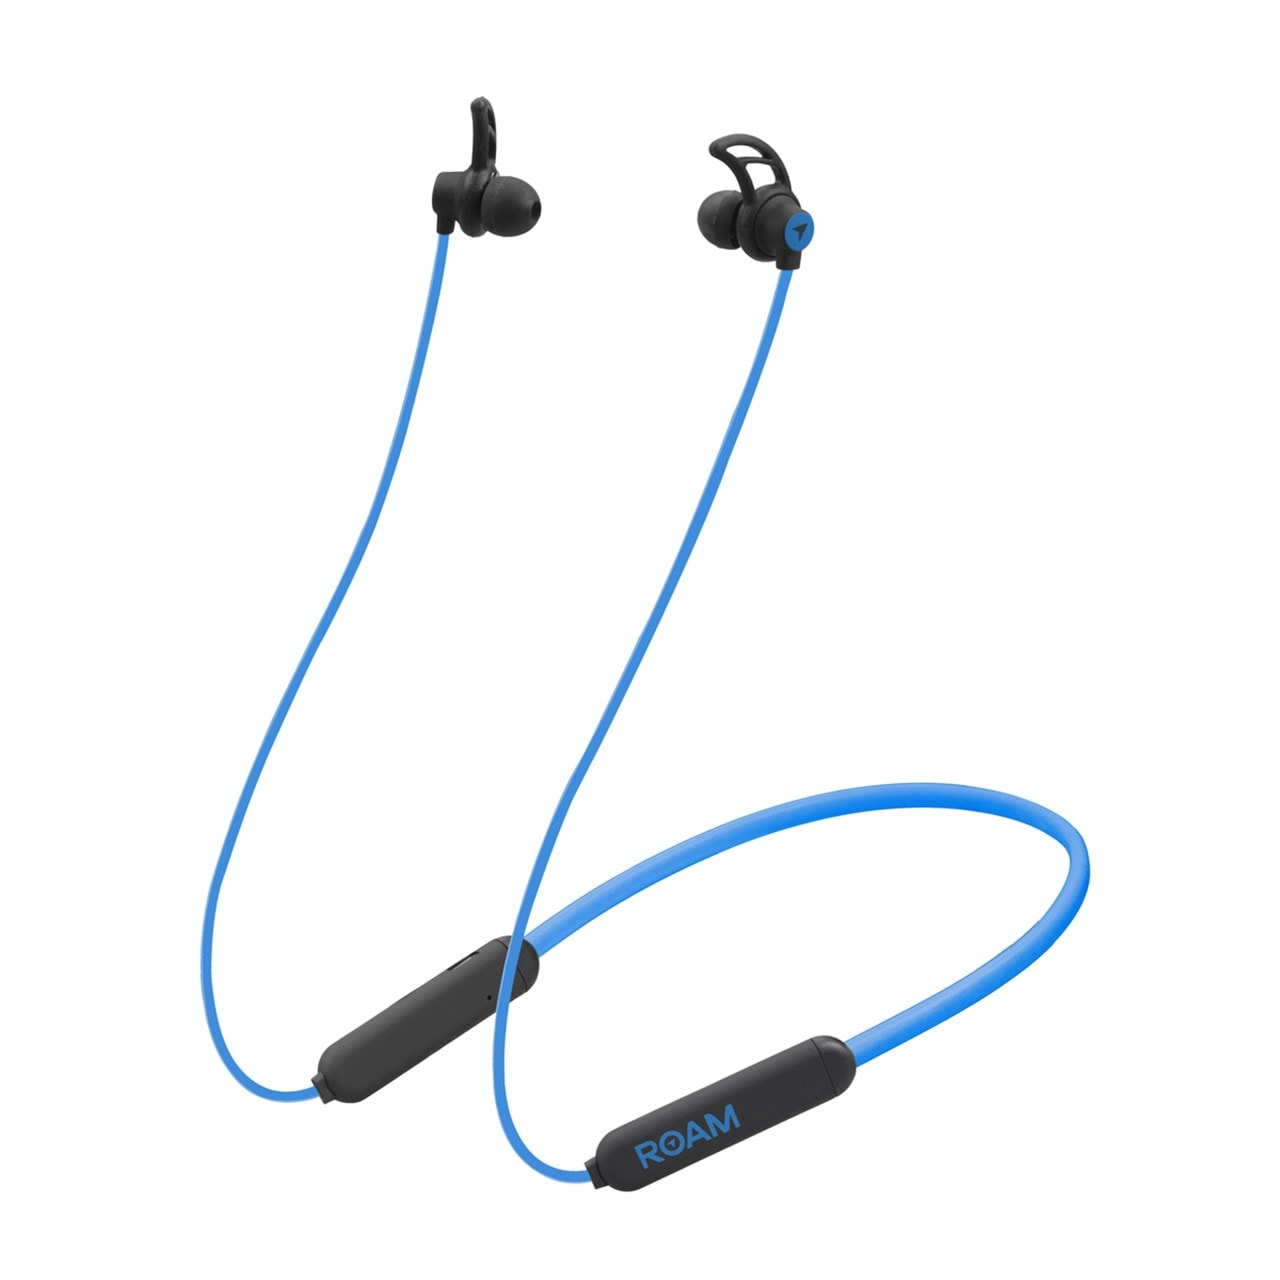 Roam Sports Pro Blue Bluetooth Earphones - 3